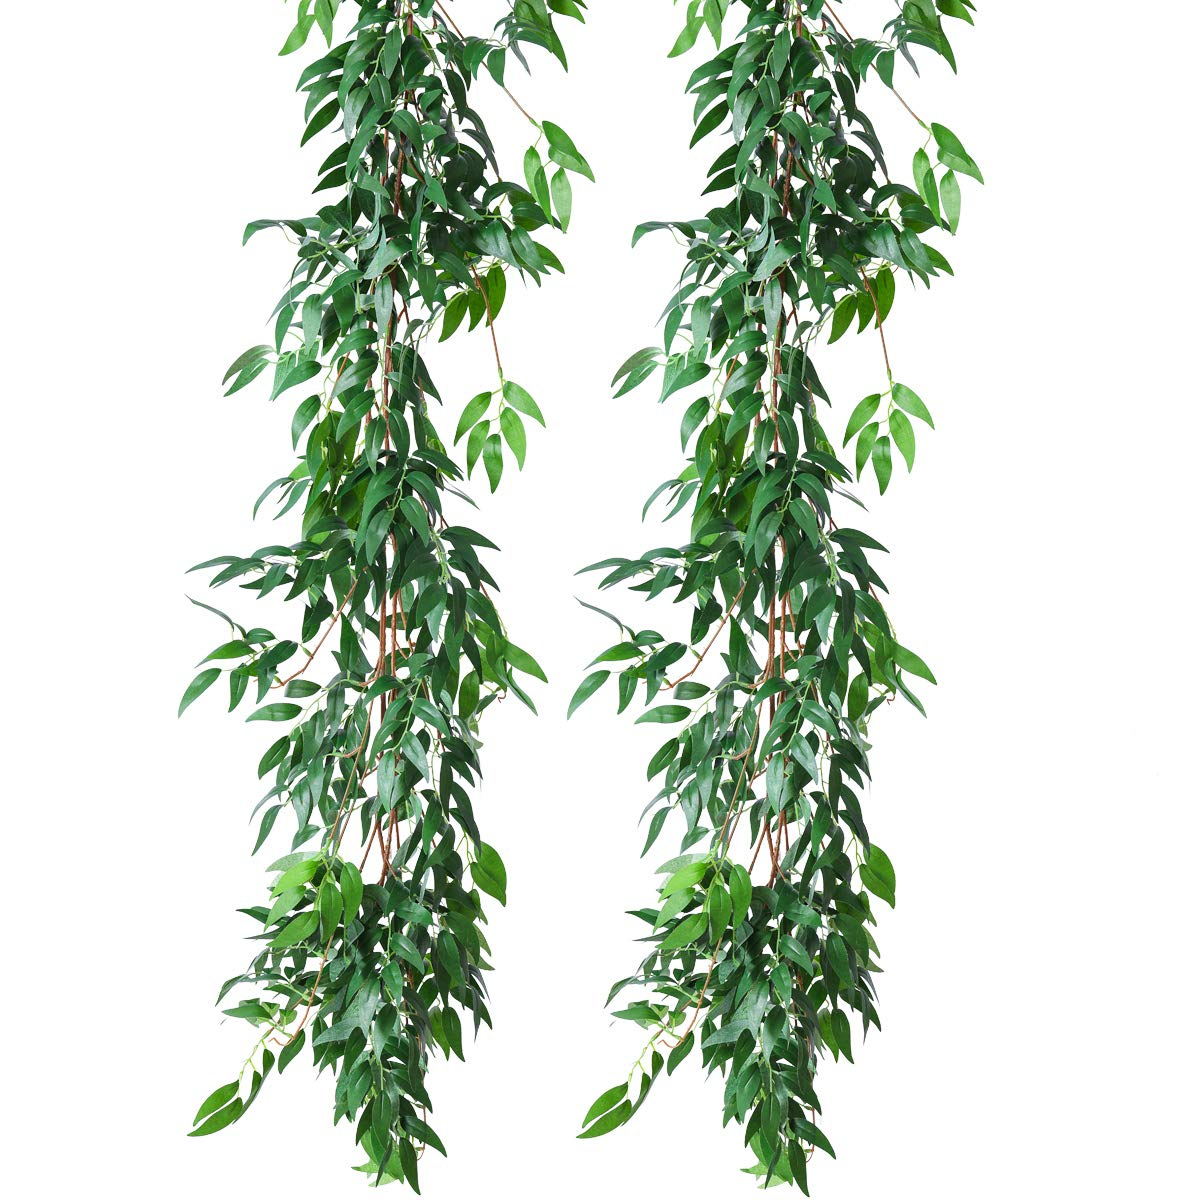 PARTY JOY Artificial Greenery Garland Faux Silk Willow Leaves Vines Wreath Wedding Backdrop Wall Decor Flower Arrangement (Willow Leaves Garland, 2)